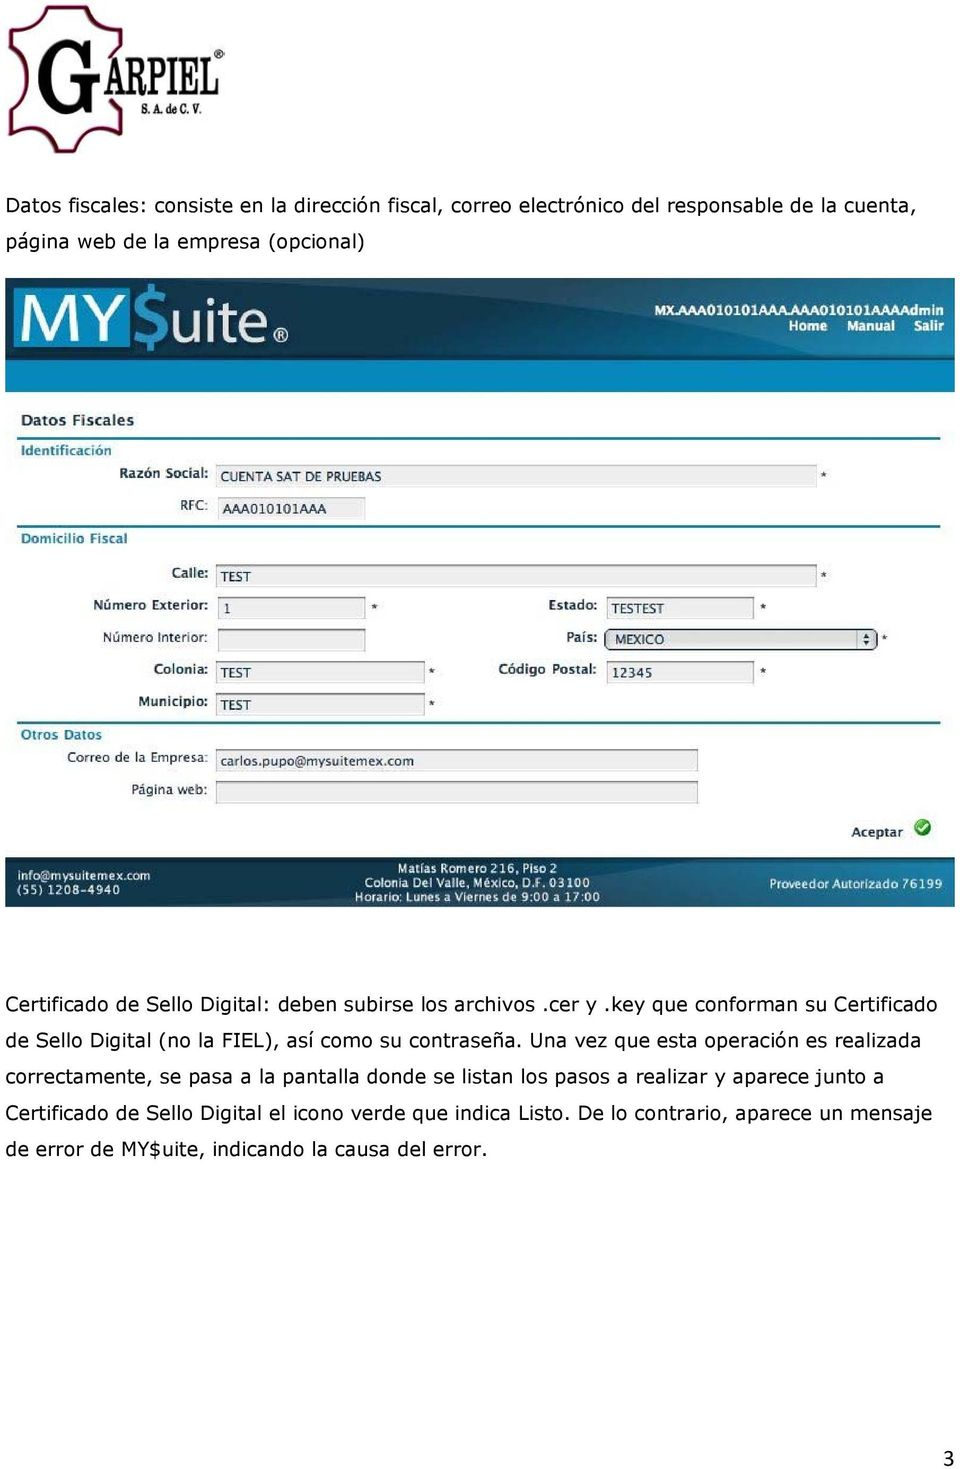 key que conforman su Certificado de Sello Digital (no la FIEL), así como su contraseña.